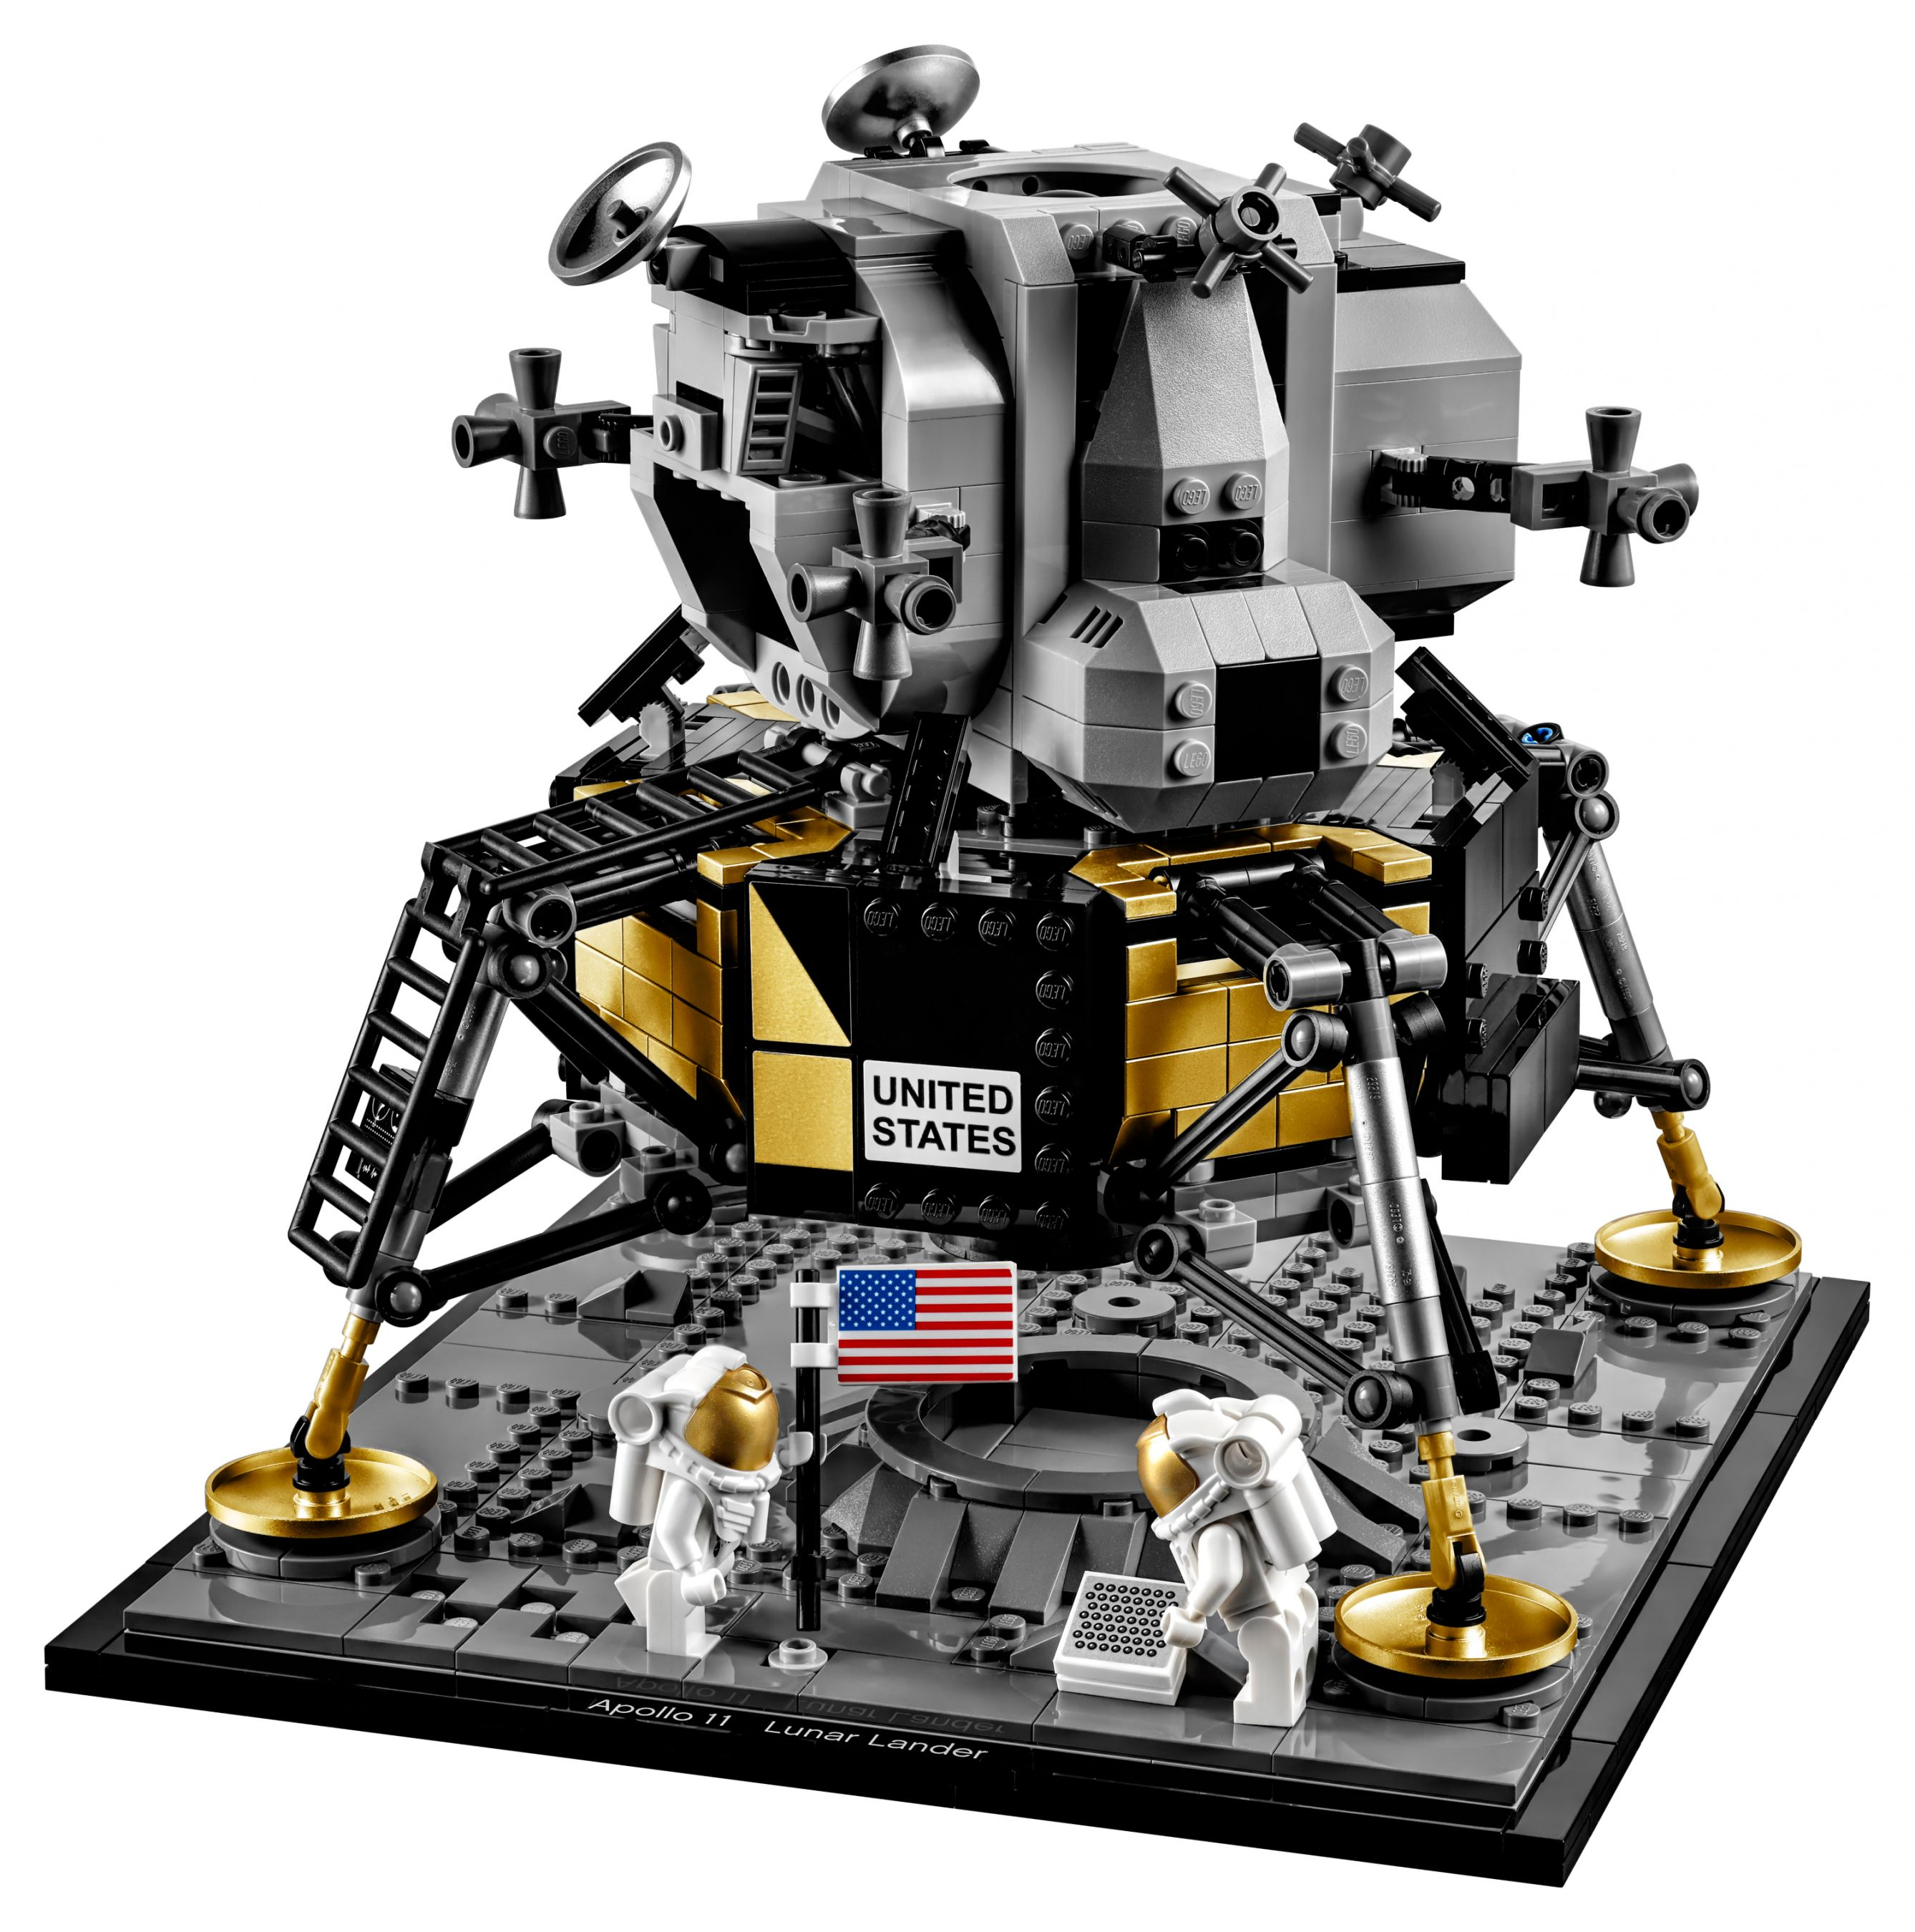 LEGO Advanced Models 10266 NASA Apollo 11 Mondlandefähre LEGO_10266_alt4.jpg